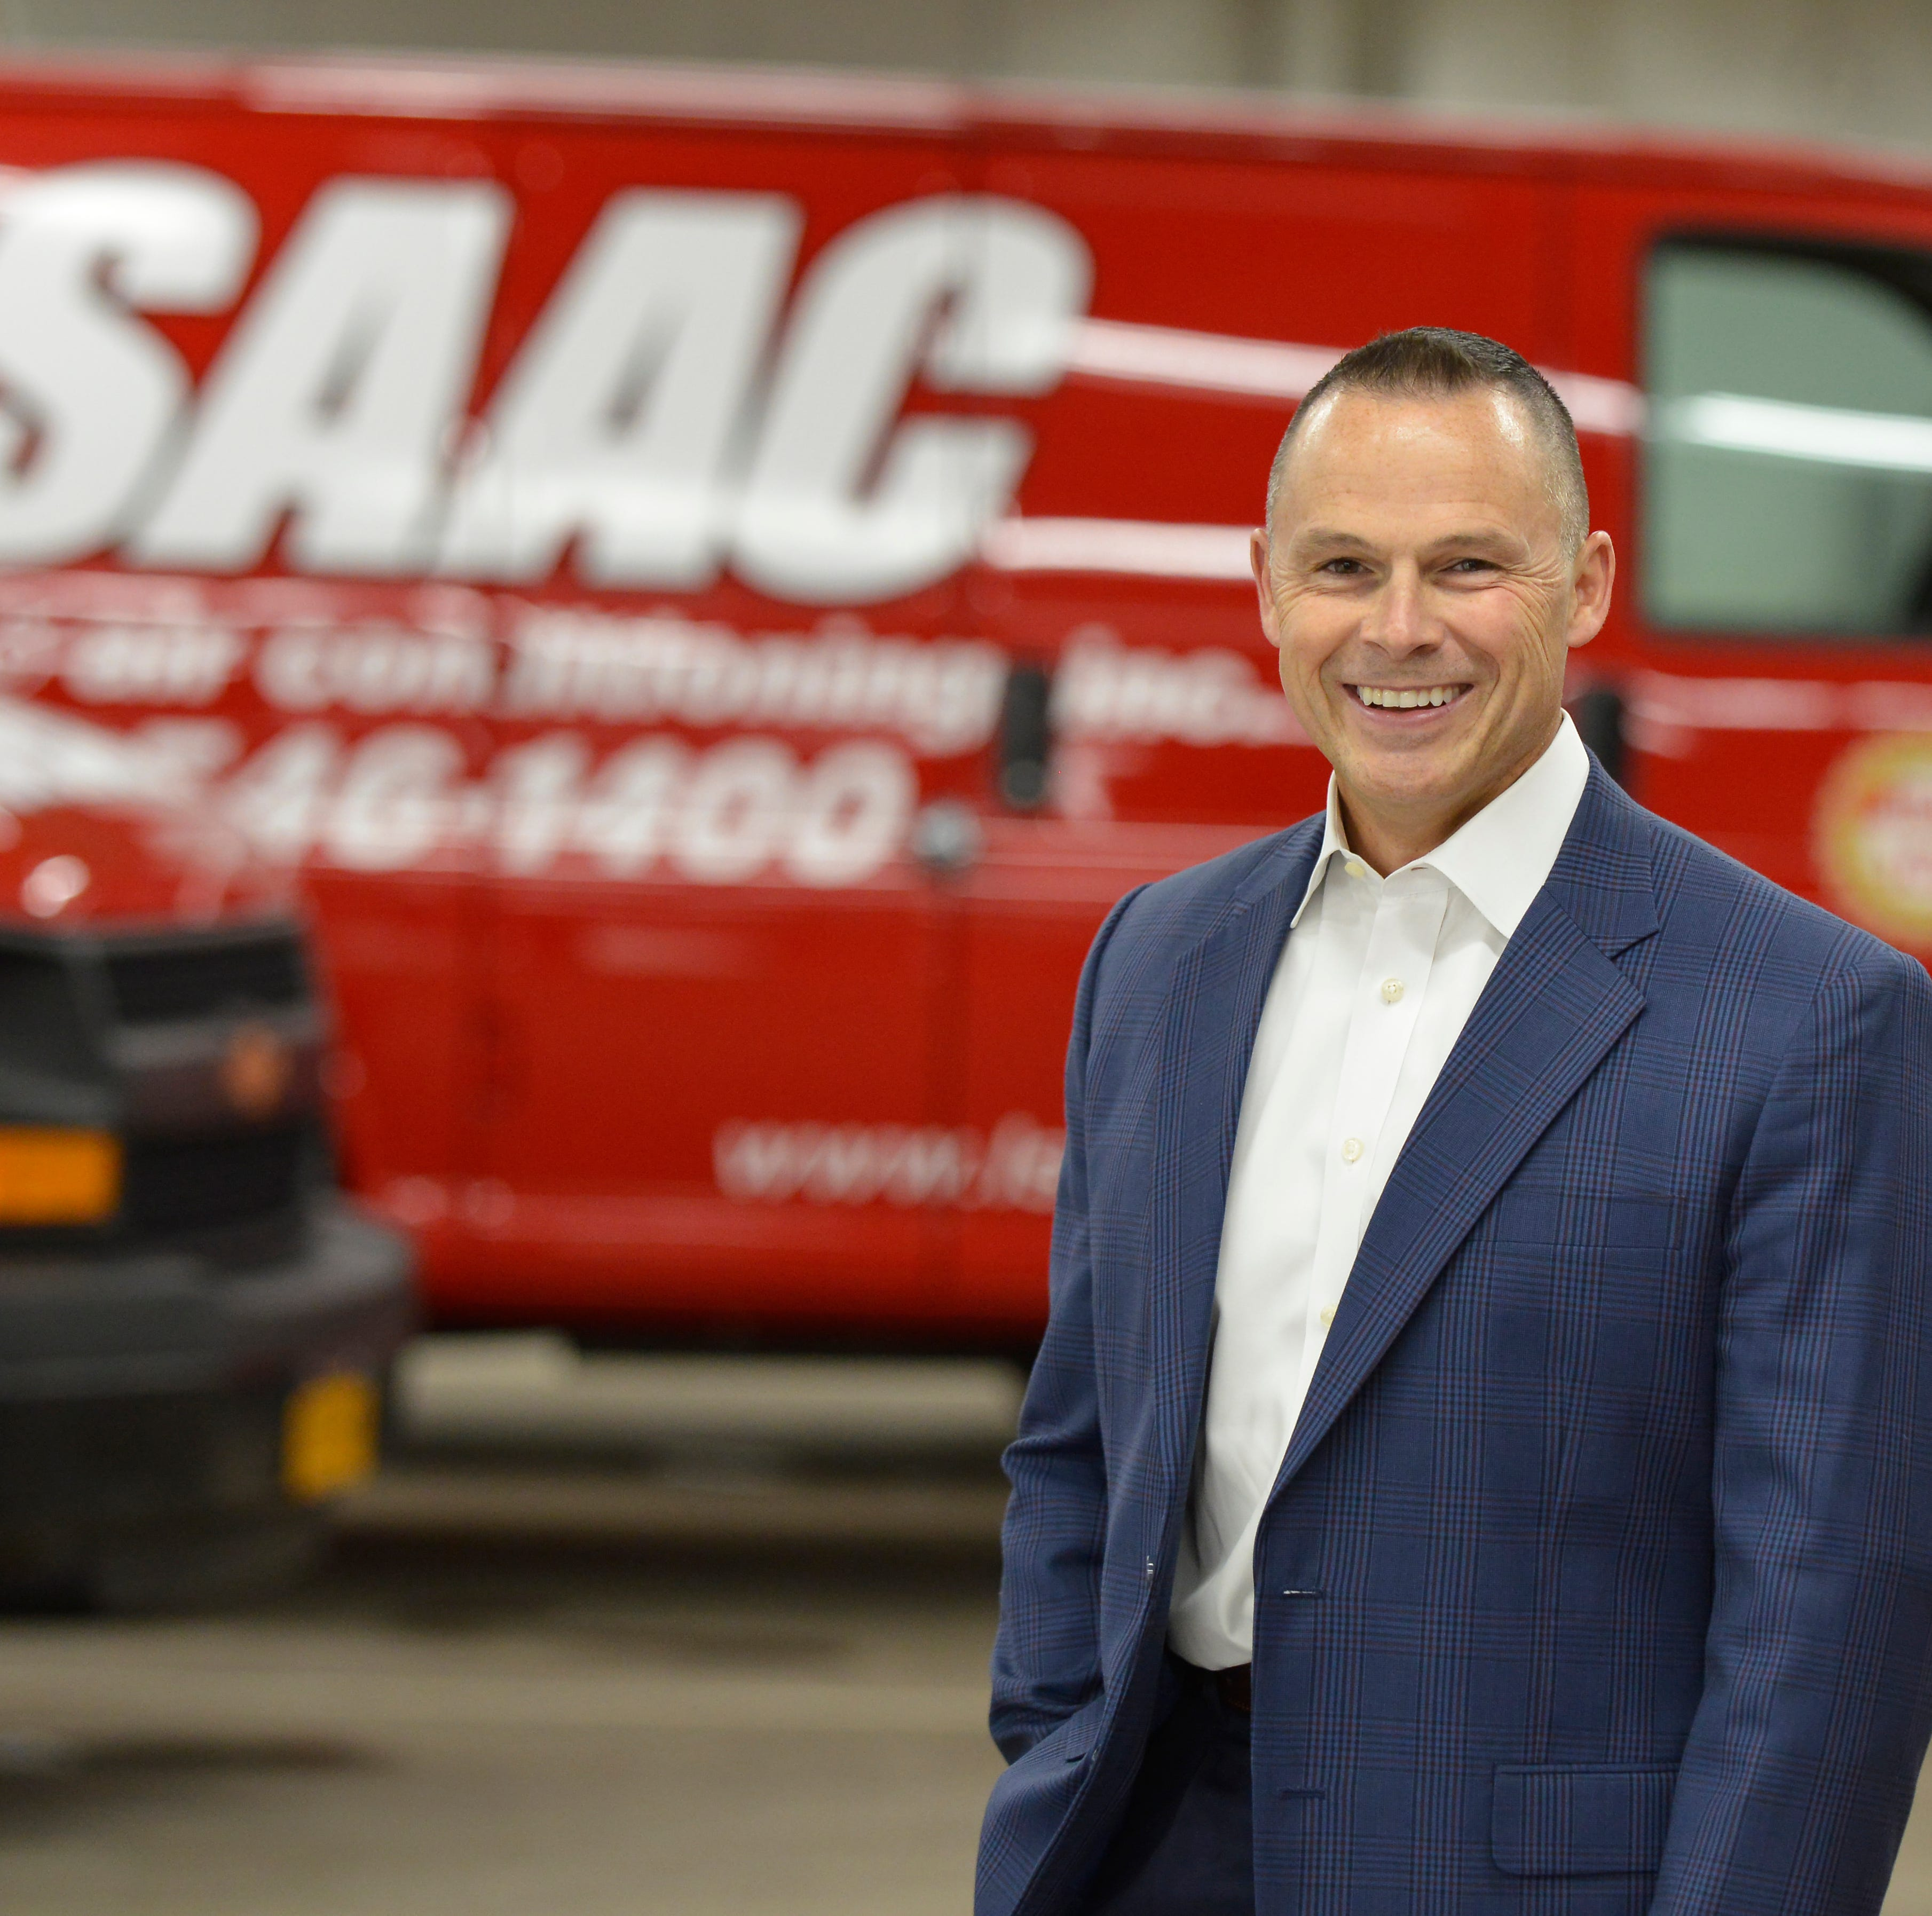 Isaac Heating & Air Conditioning management has a smart reason for listening to employees